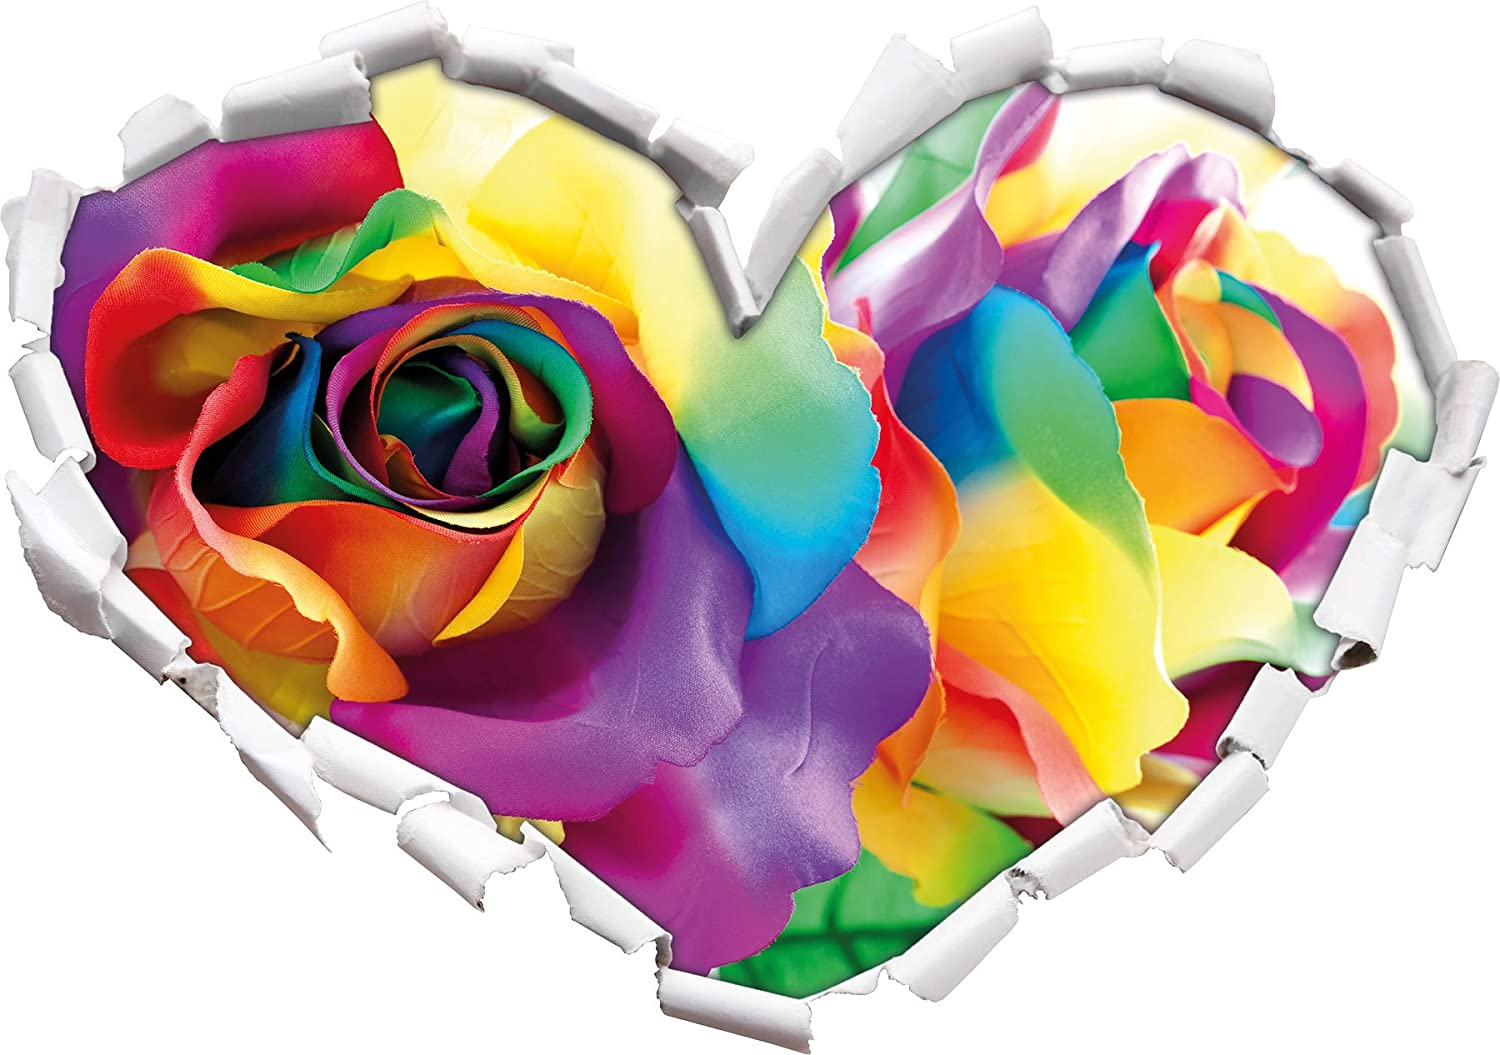 Colourful roses heart shape in the 3D look, wall or door sticker Format: 62x43.5cm, Wall Stickers, Wall Decals, Wall decoration Stil.Zeit